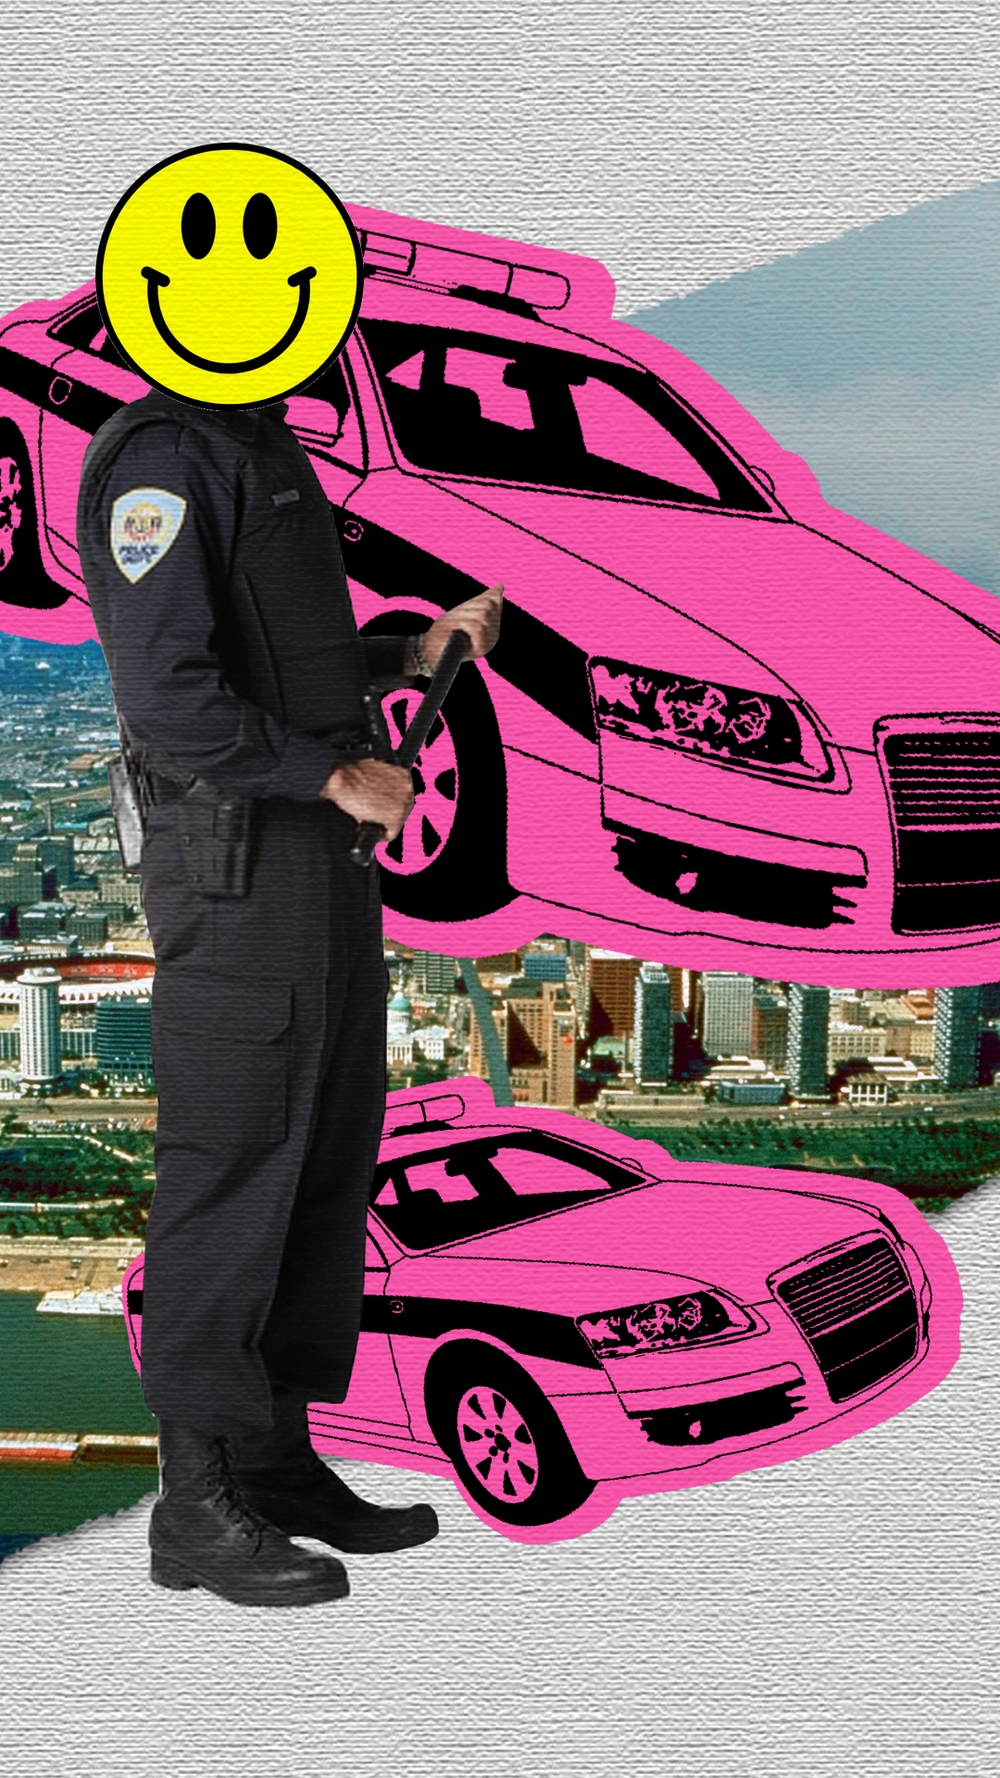 LAW_ENFORCEMENT.png